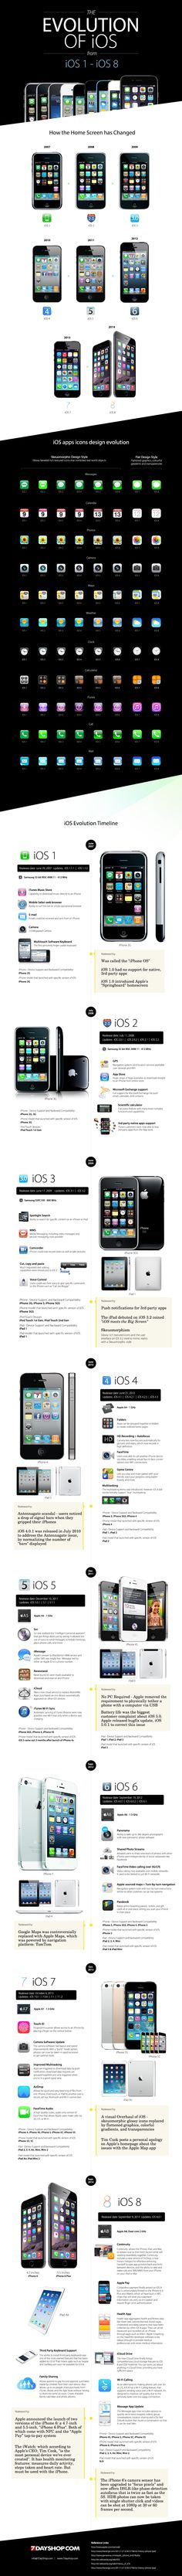 The Evolution of iOS image